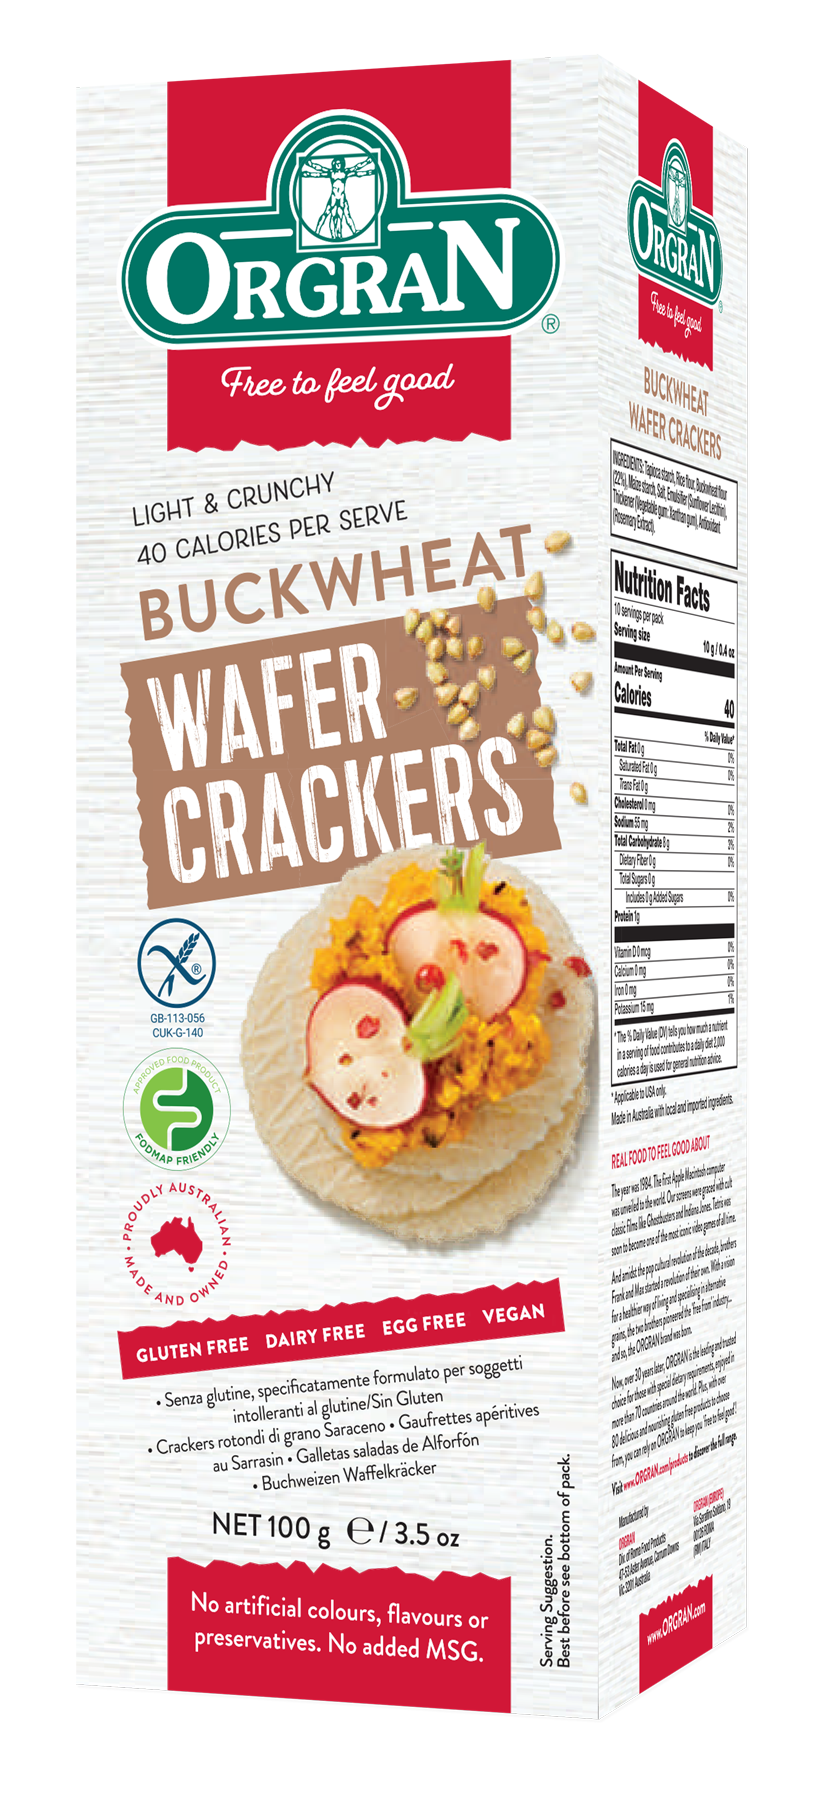 Gluten-Free Buckwheat Wafer Crackers